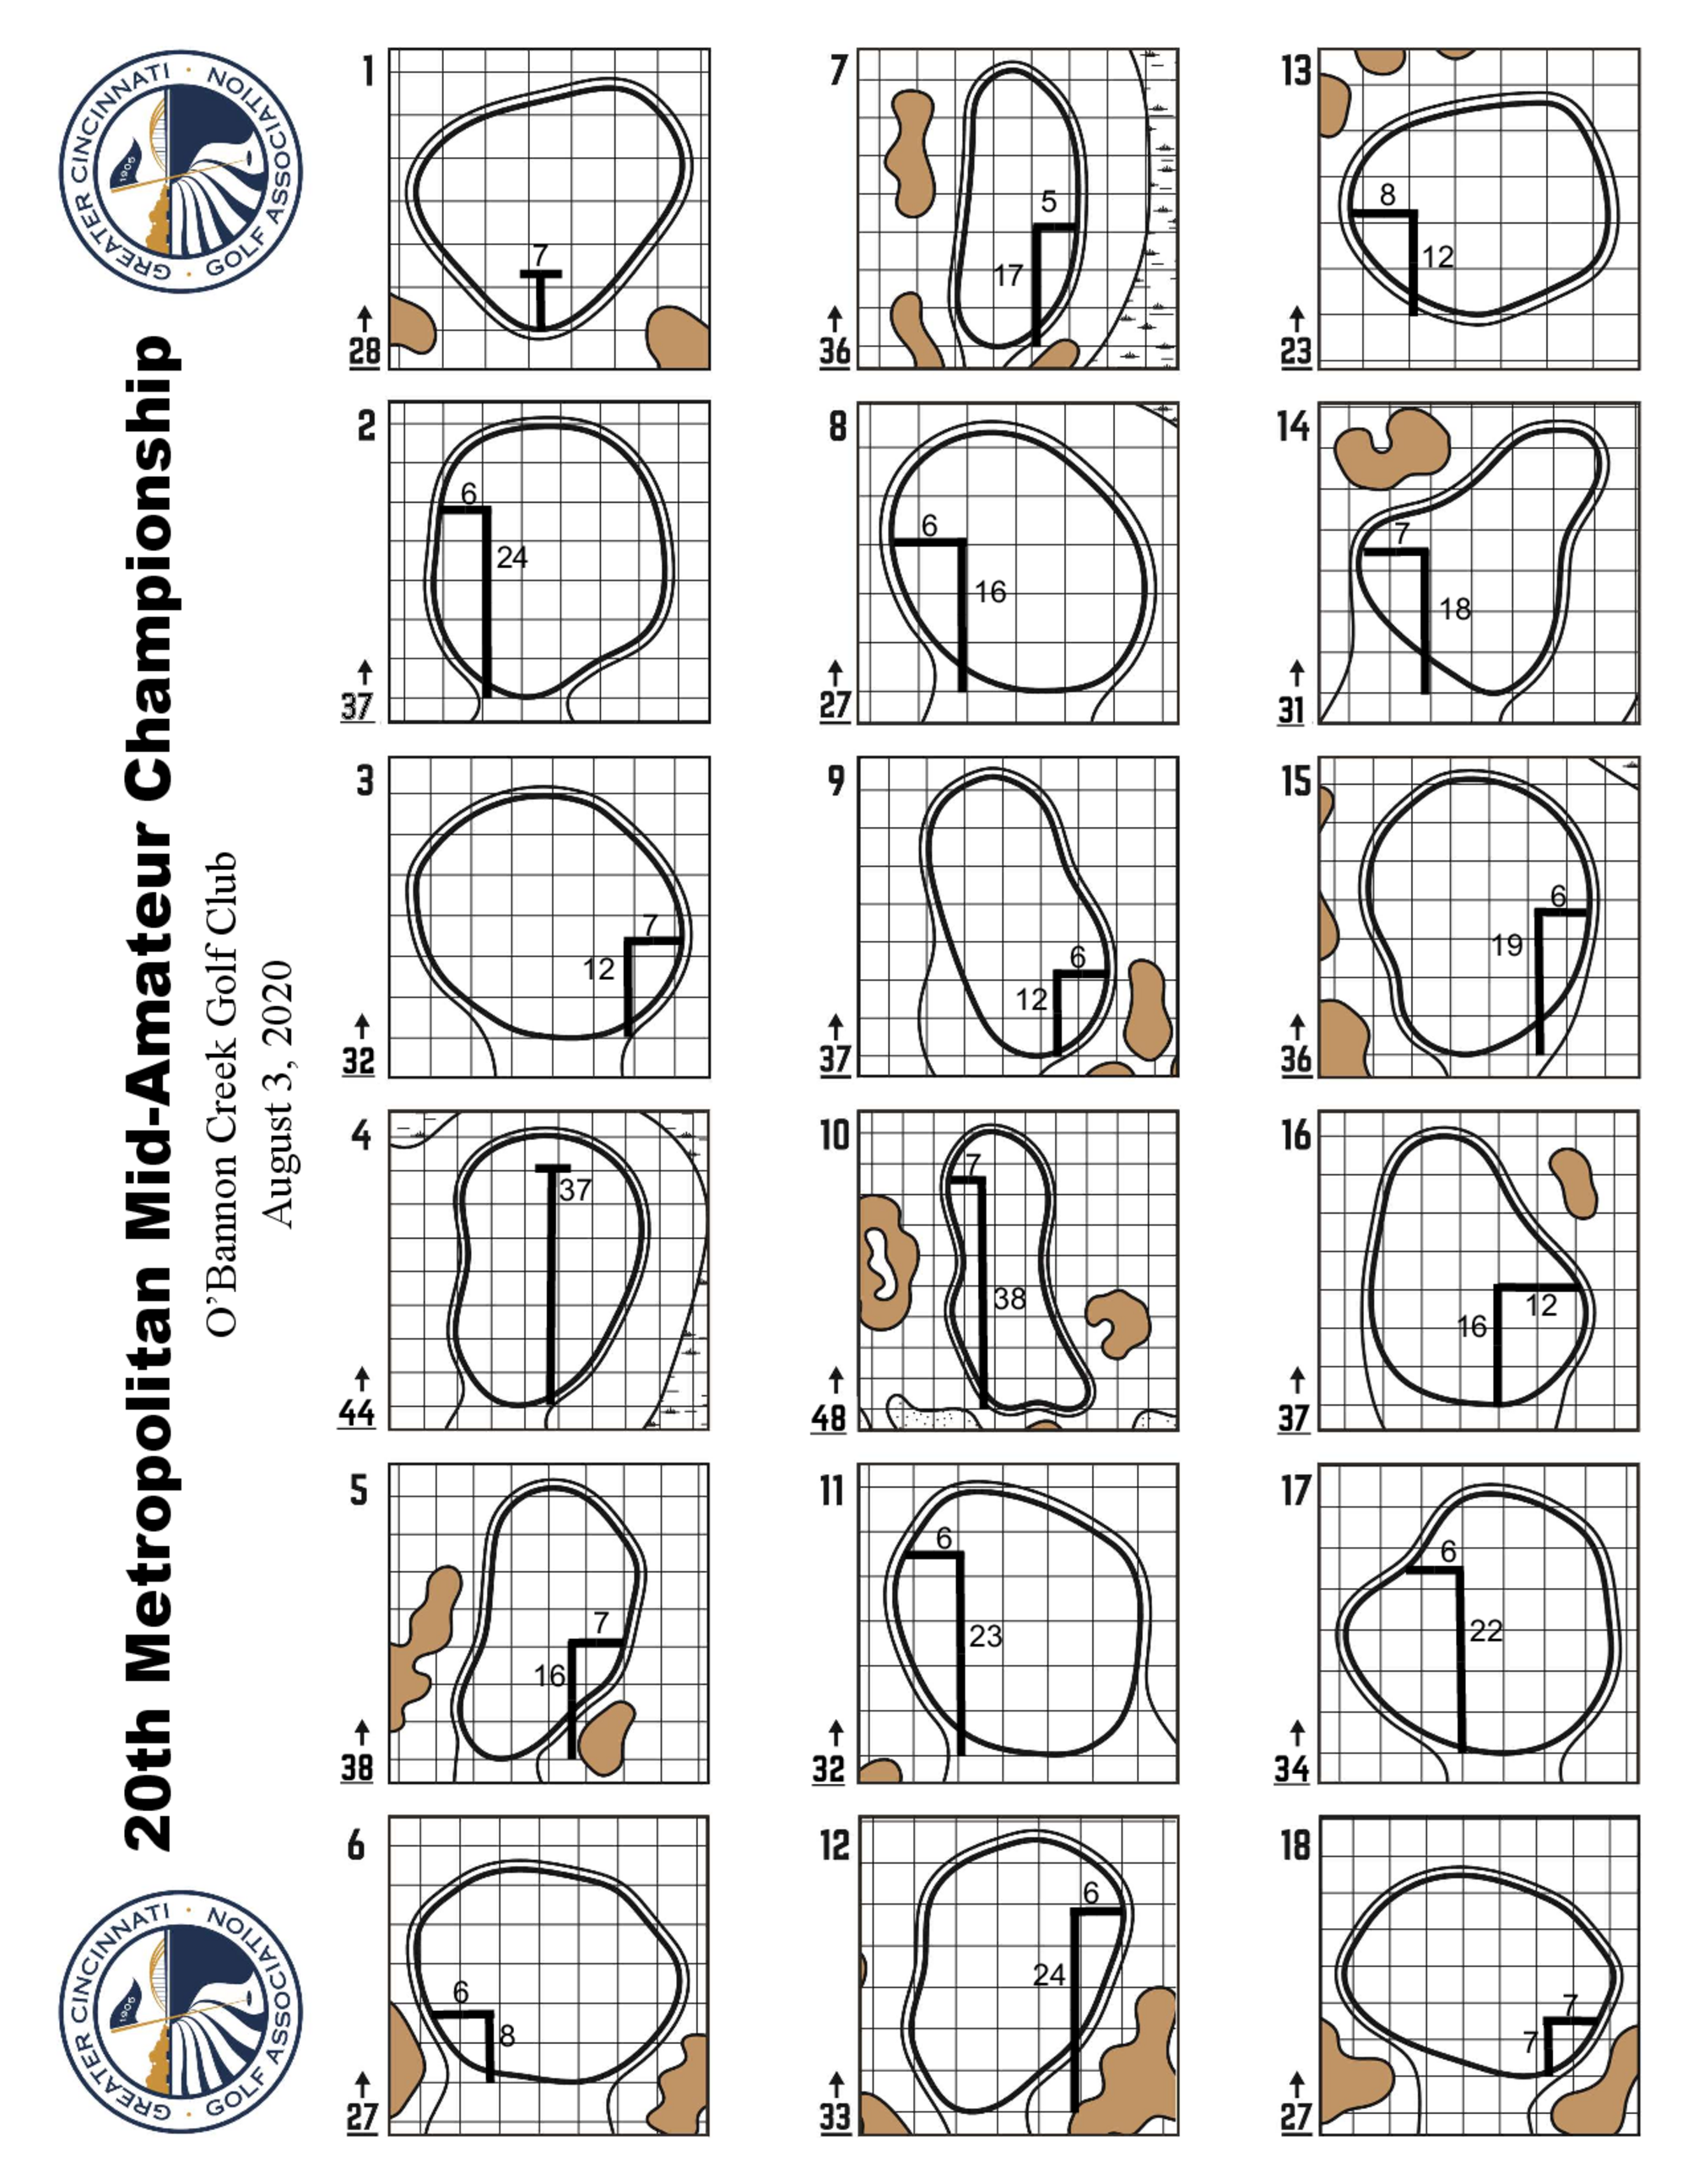 Hole locations   o bannon   day  1 1